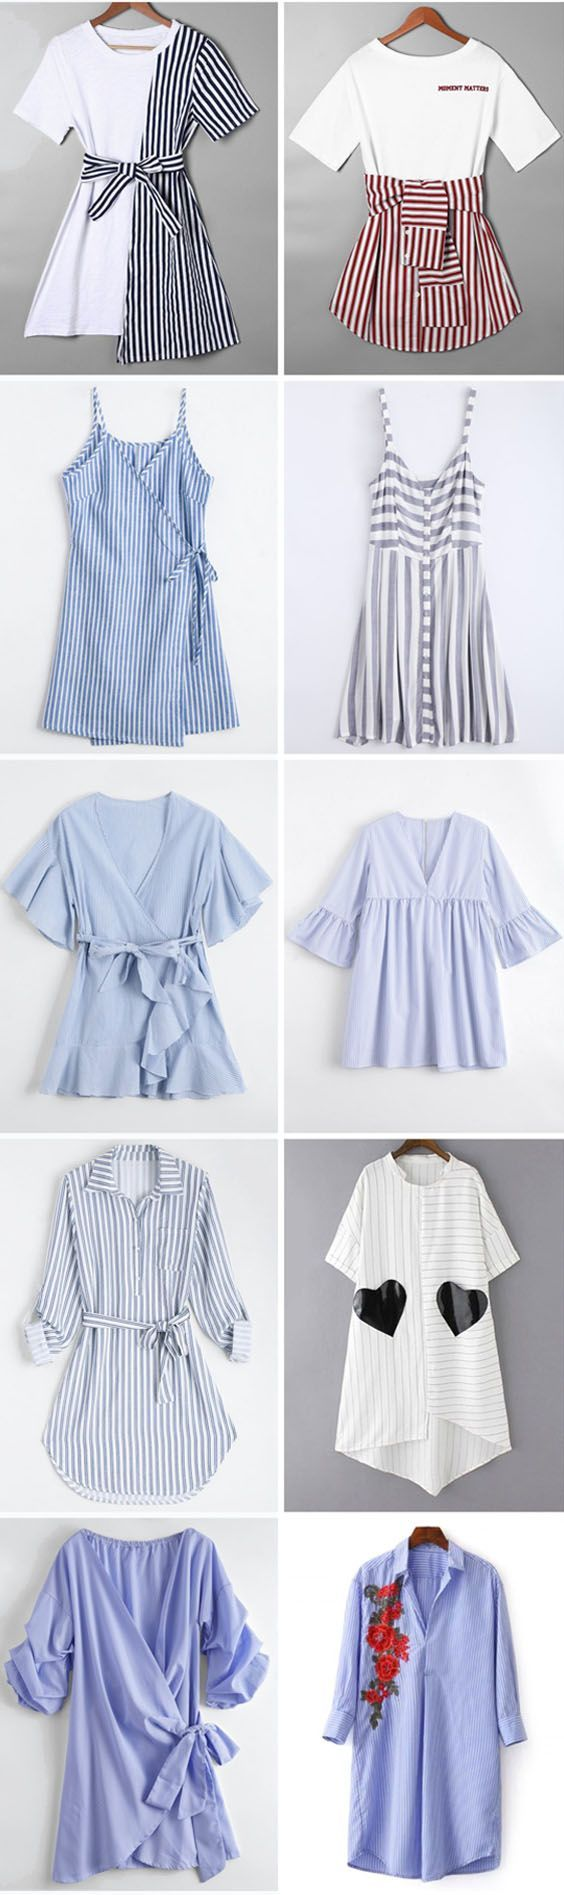 zaful,dress,Striped Dress,summer,women fashion,fall outfits,wedding dresses,summer outfits,long sleeve dresses,fall fashion,fall,midi dress,lace dress,dresses,boho dress,bohemian style,dresses to wear to a wedding,bohemian,boho fashion,lace,dresses casual,open back,maxis,summer fashion,boho,zaful.com,boho chic,spring break clothes,girl clothing,prom dress,black dress,summer dresses,dresses casual,dresses for teens,outfit,outfits,outfit ideas,womens fashion,fashion,women,womens,style